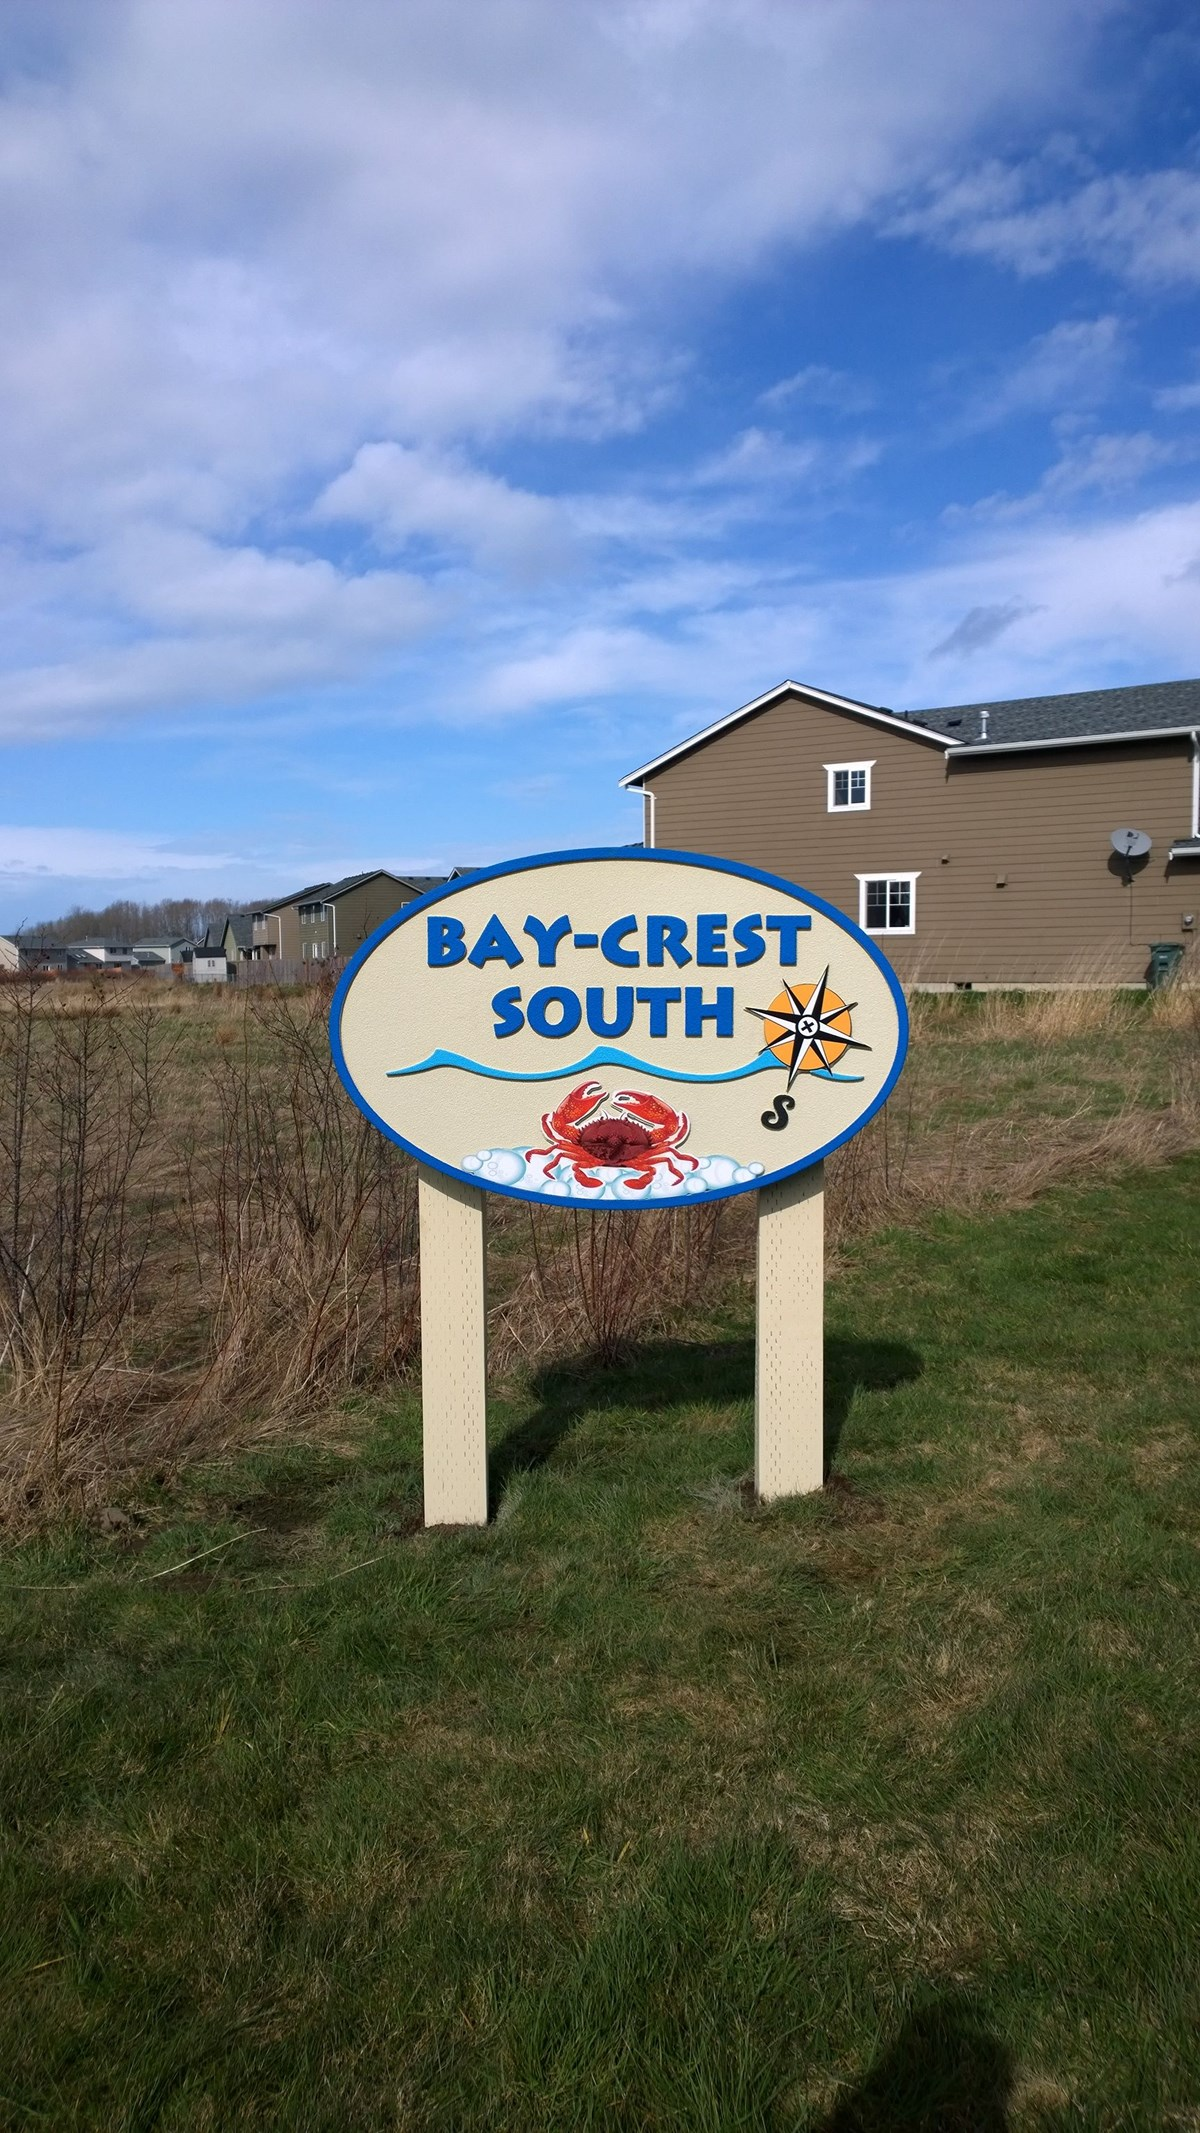 Baycrest South